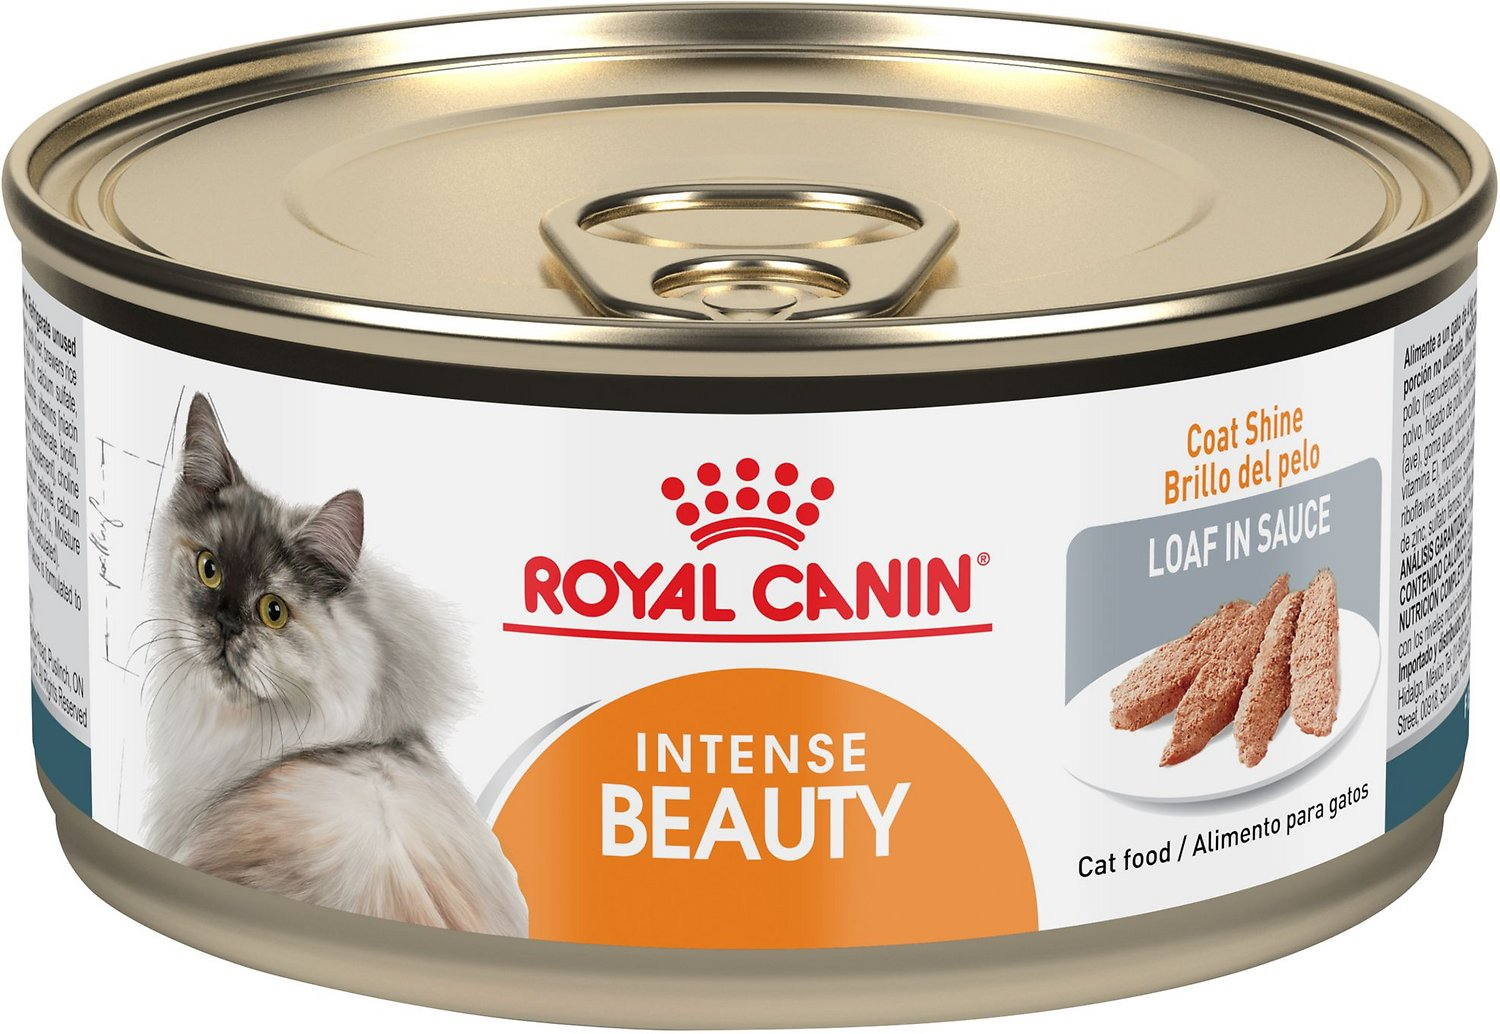 Royal Canin Intense Beauty Loaf in Sauce Canned Cat Food, 3-oz